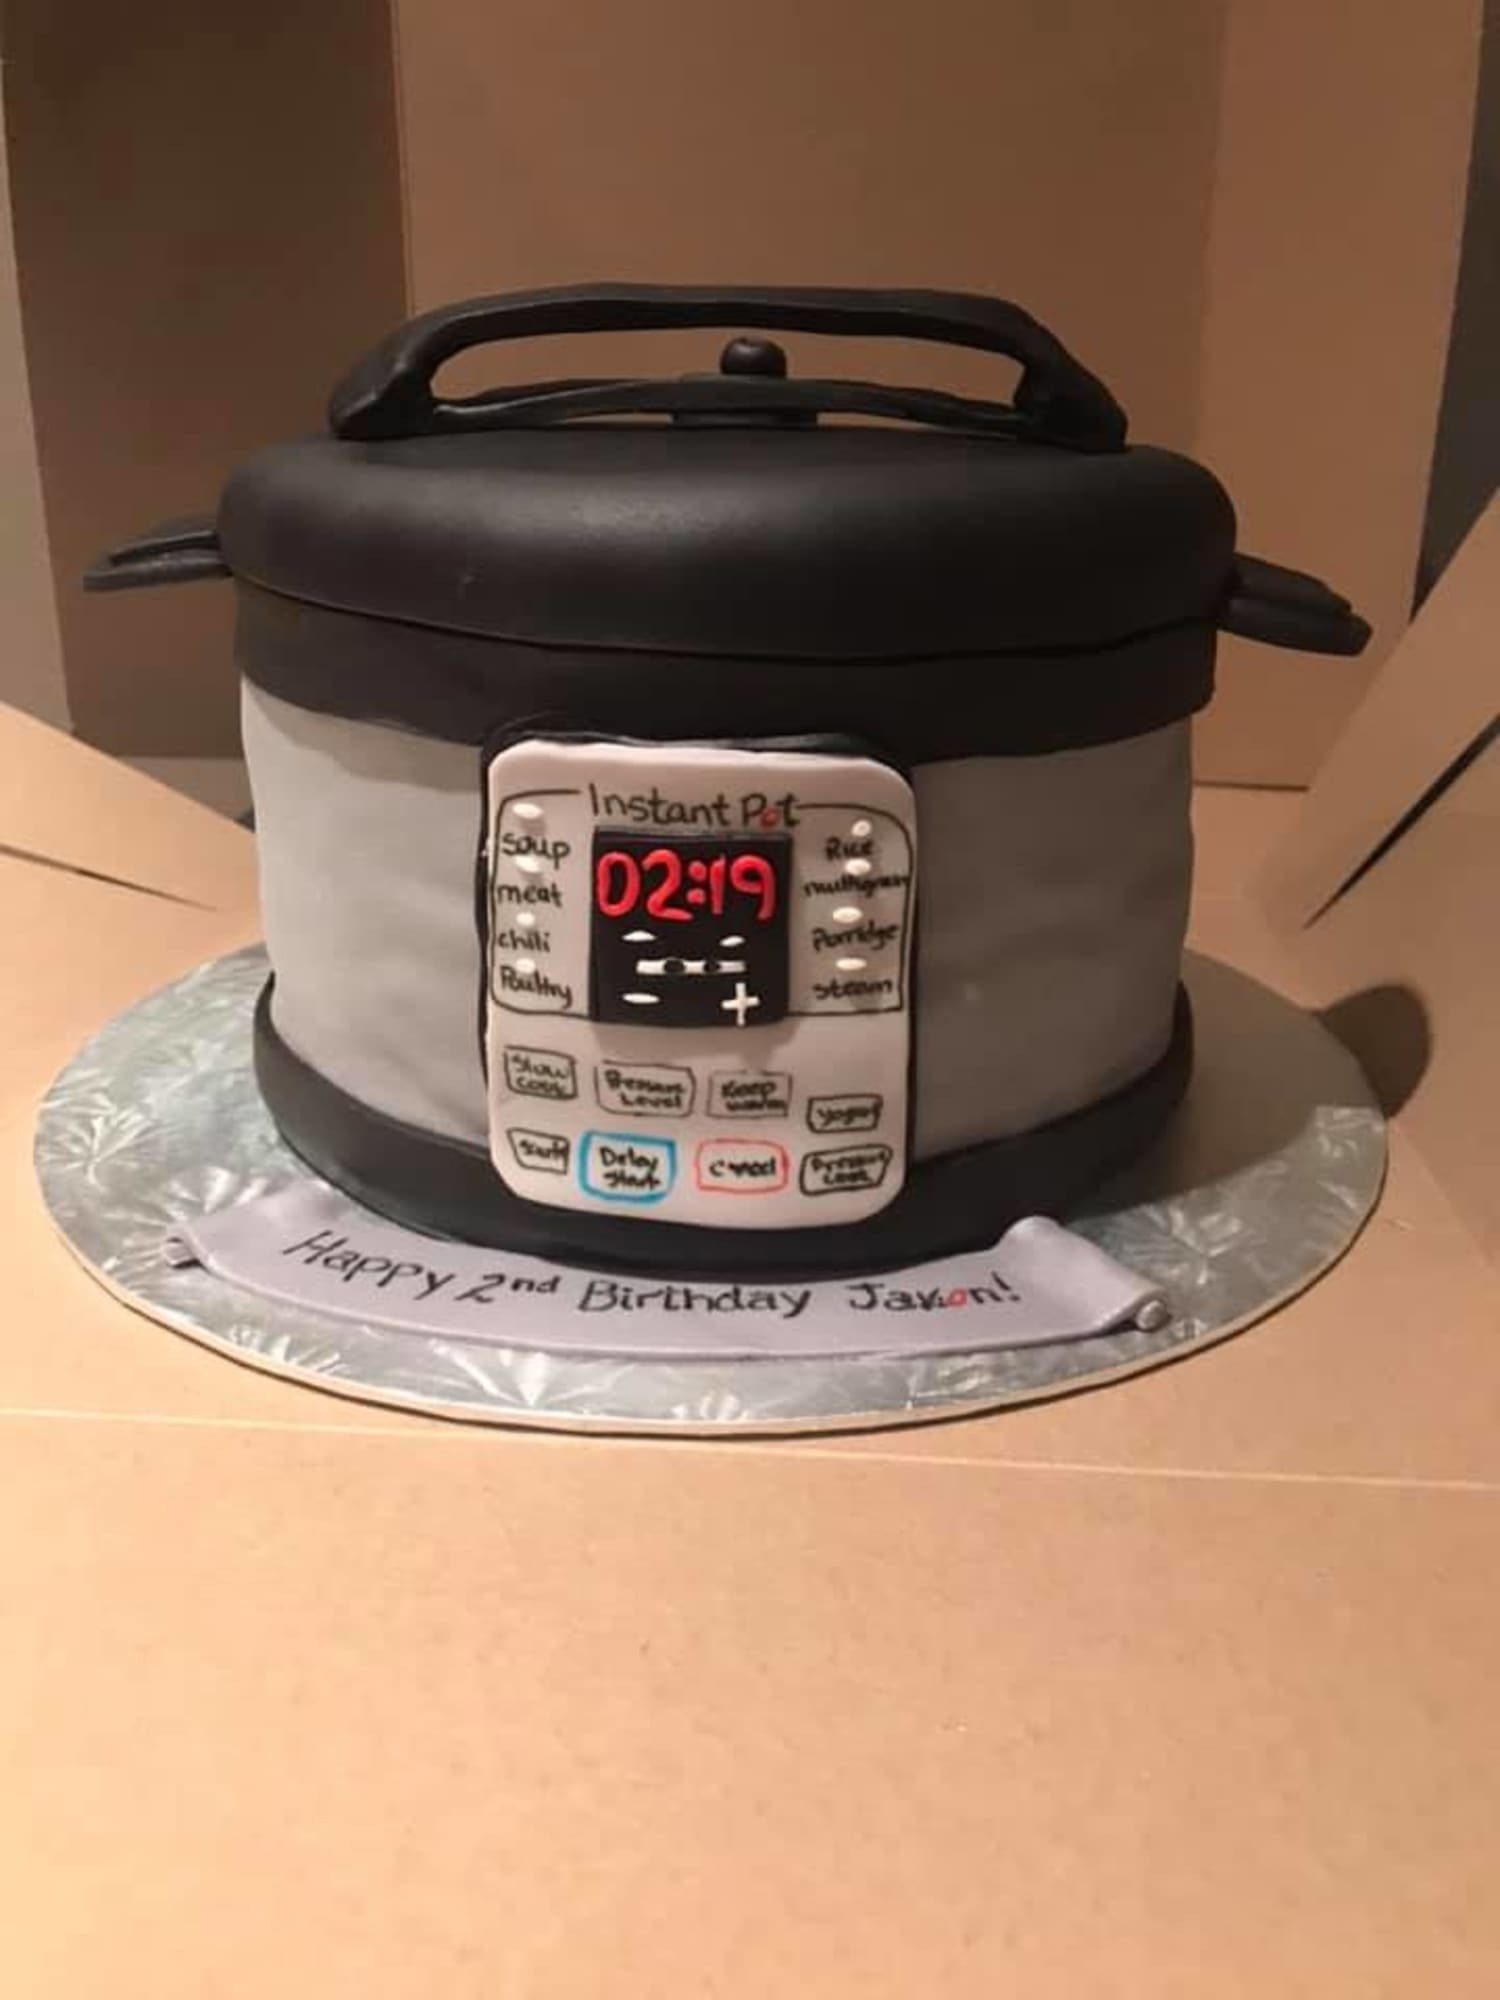 This 2-Year-Old Boy Is Obsessed with the Instant Pot So His Parents Got Him the Sweetest Birthday Cake